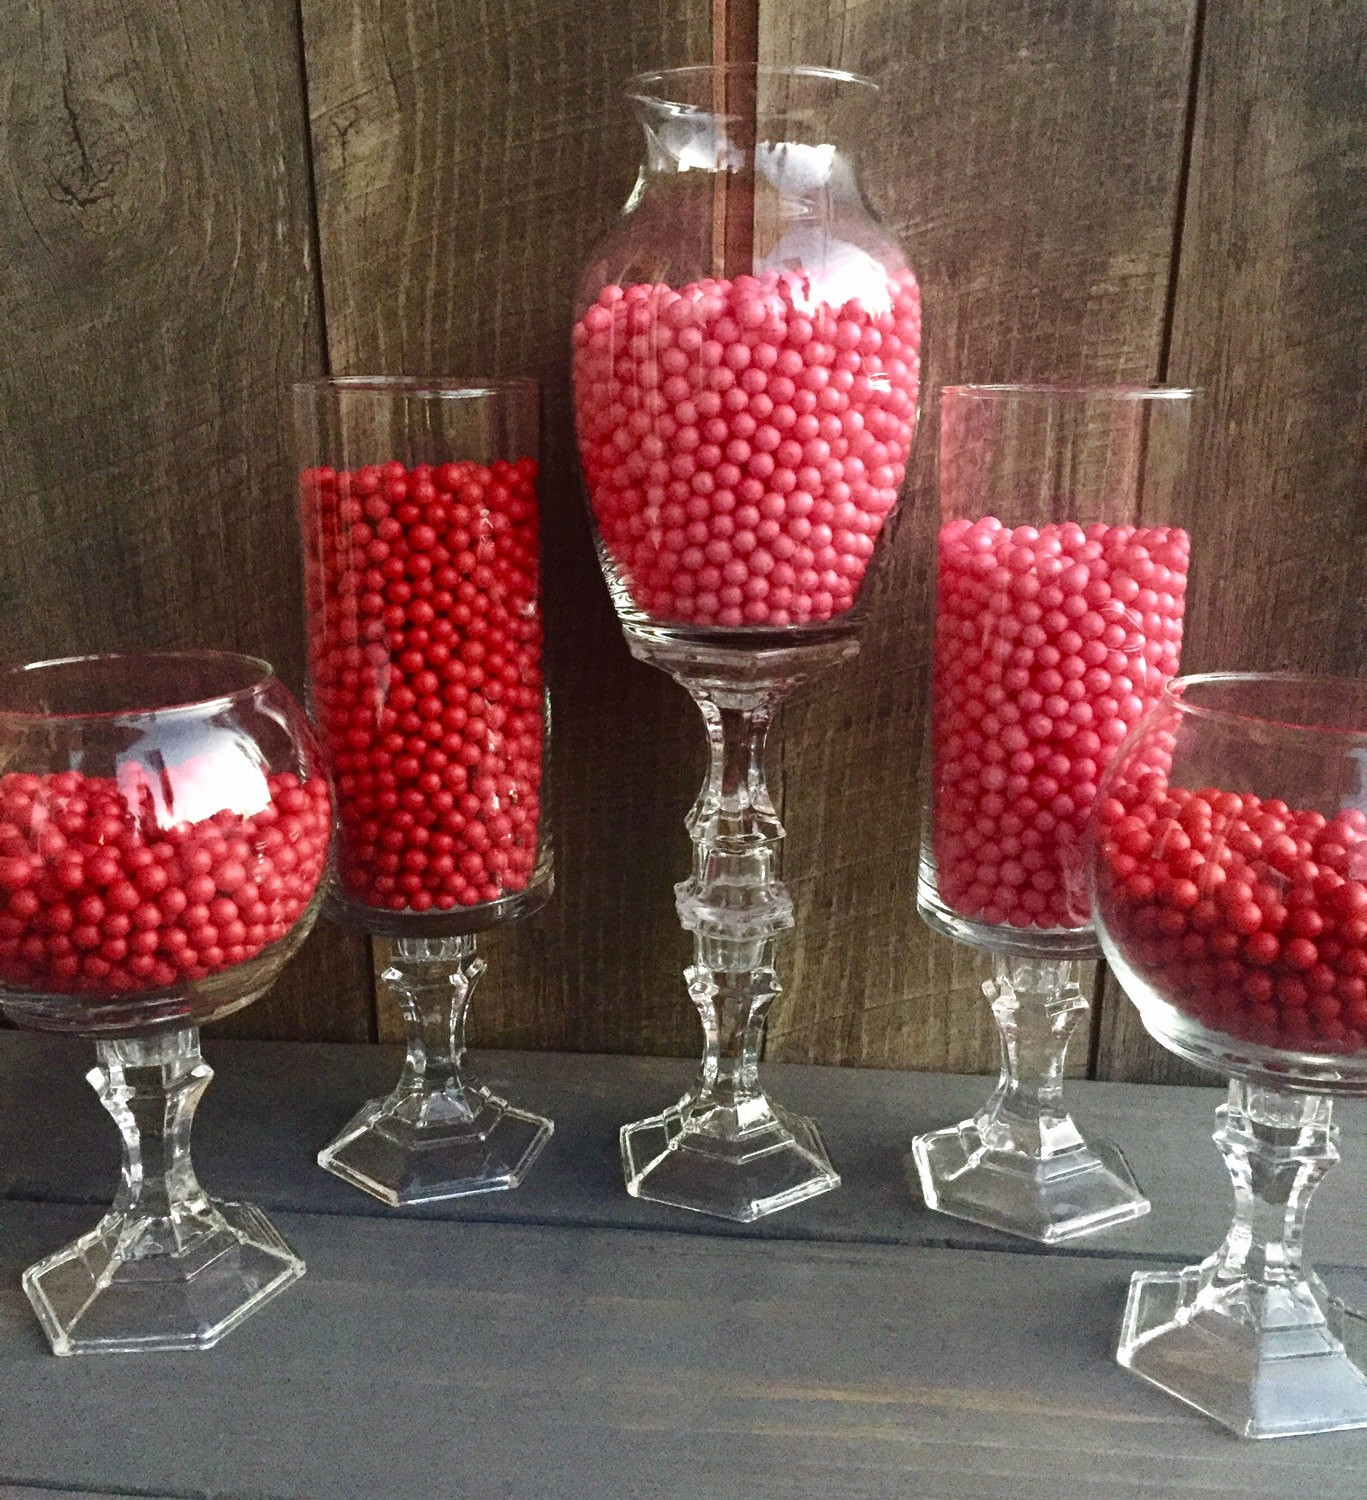 candy bar vases wholesale of plastic cylinder vase image plastic vases wholesale flowers and for plastic cylinder vase gallery glass jars for candy buffet new candy 20buffet 20containersh vases of plastic